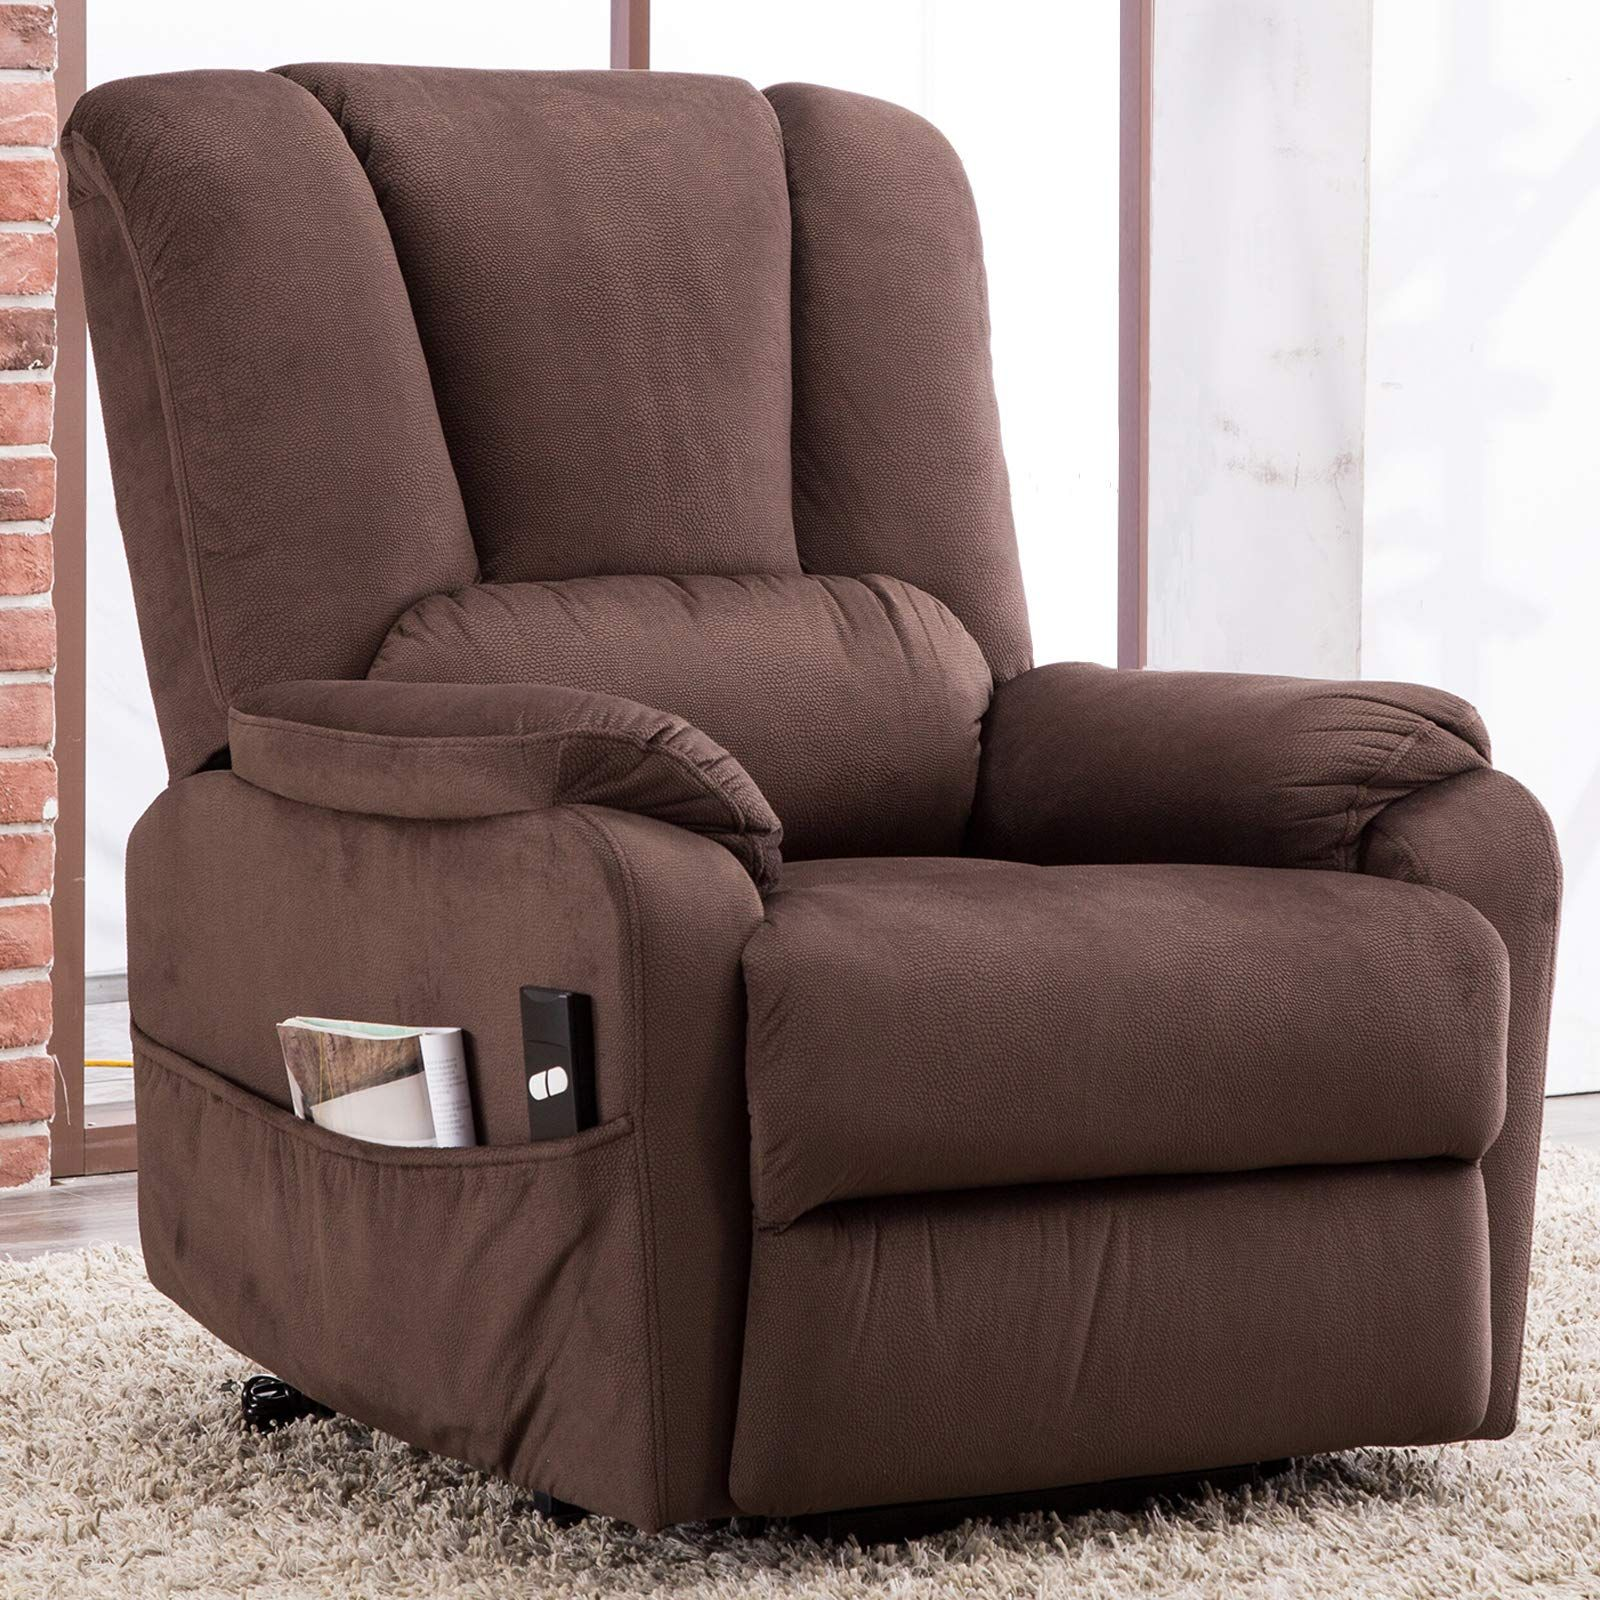 CANMOV Power Lift Recliner Chair for Elderly Heavy Duty